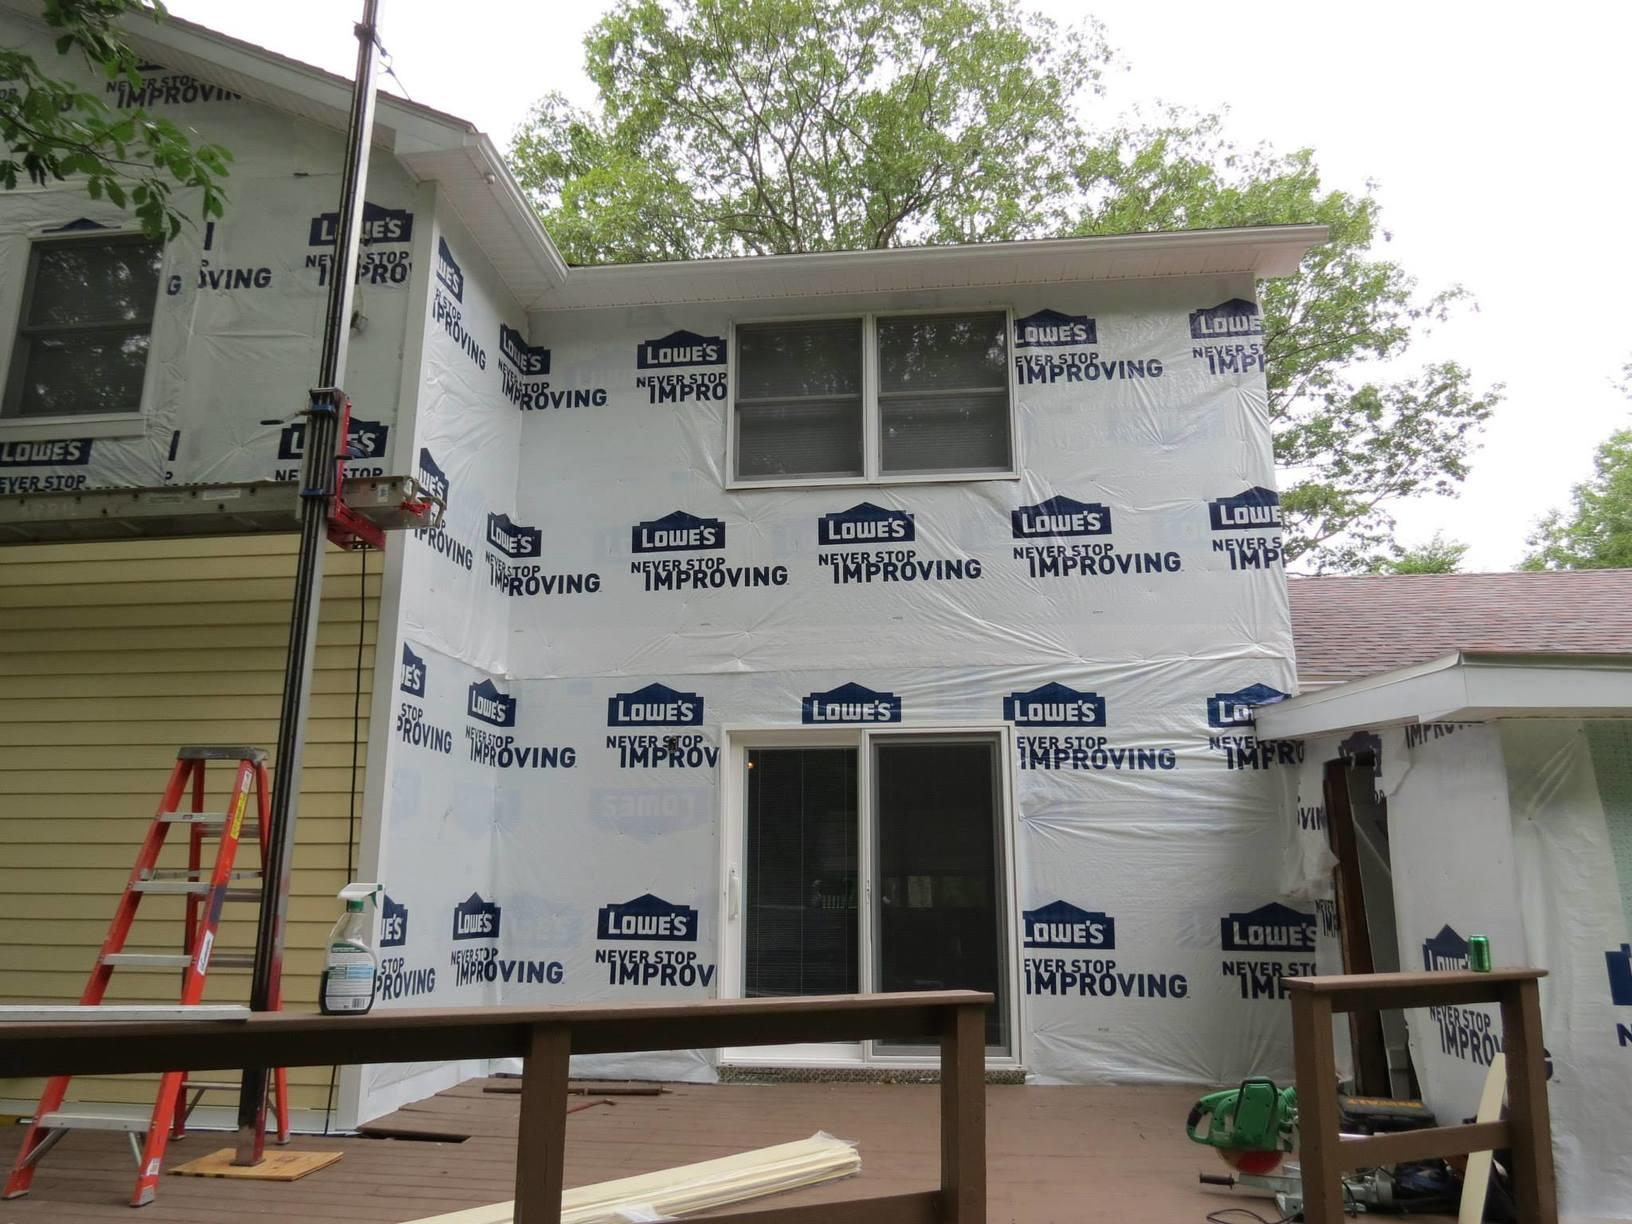 Rear view of siding installation in Olivebridge